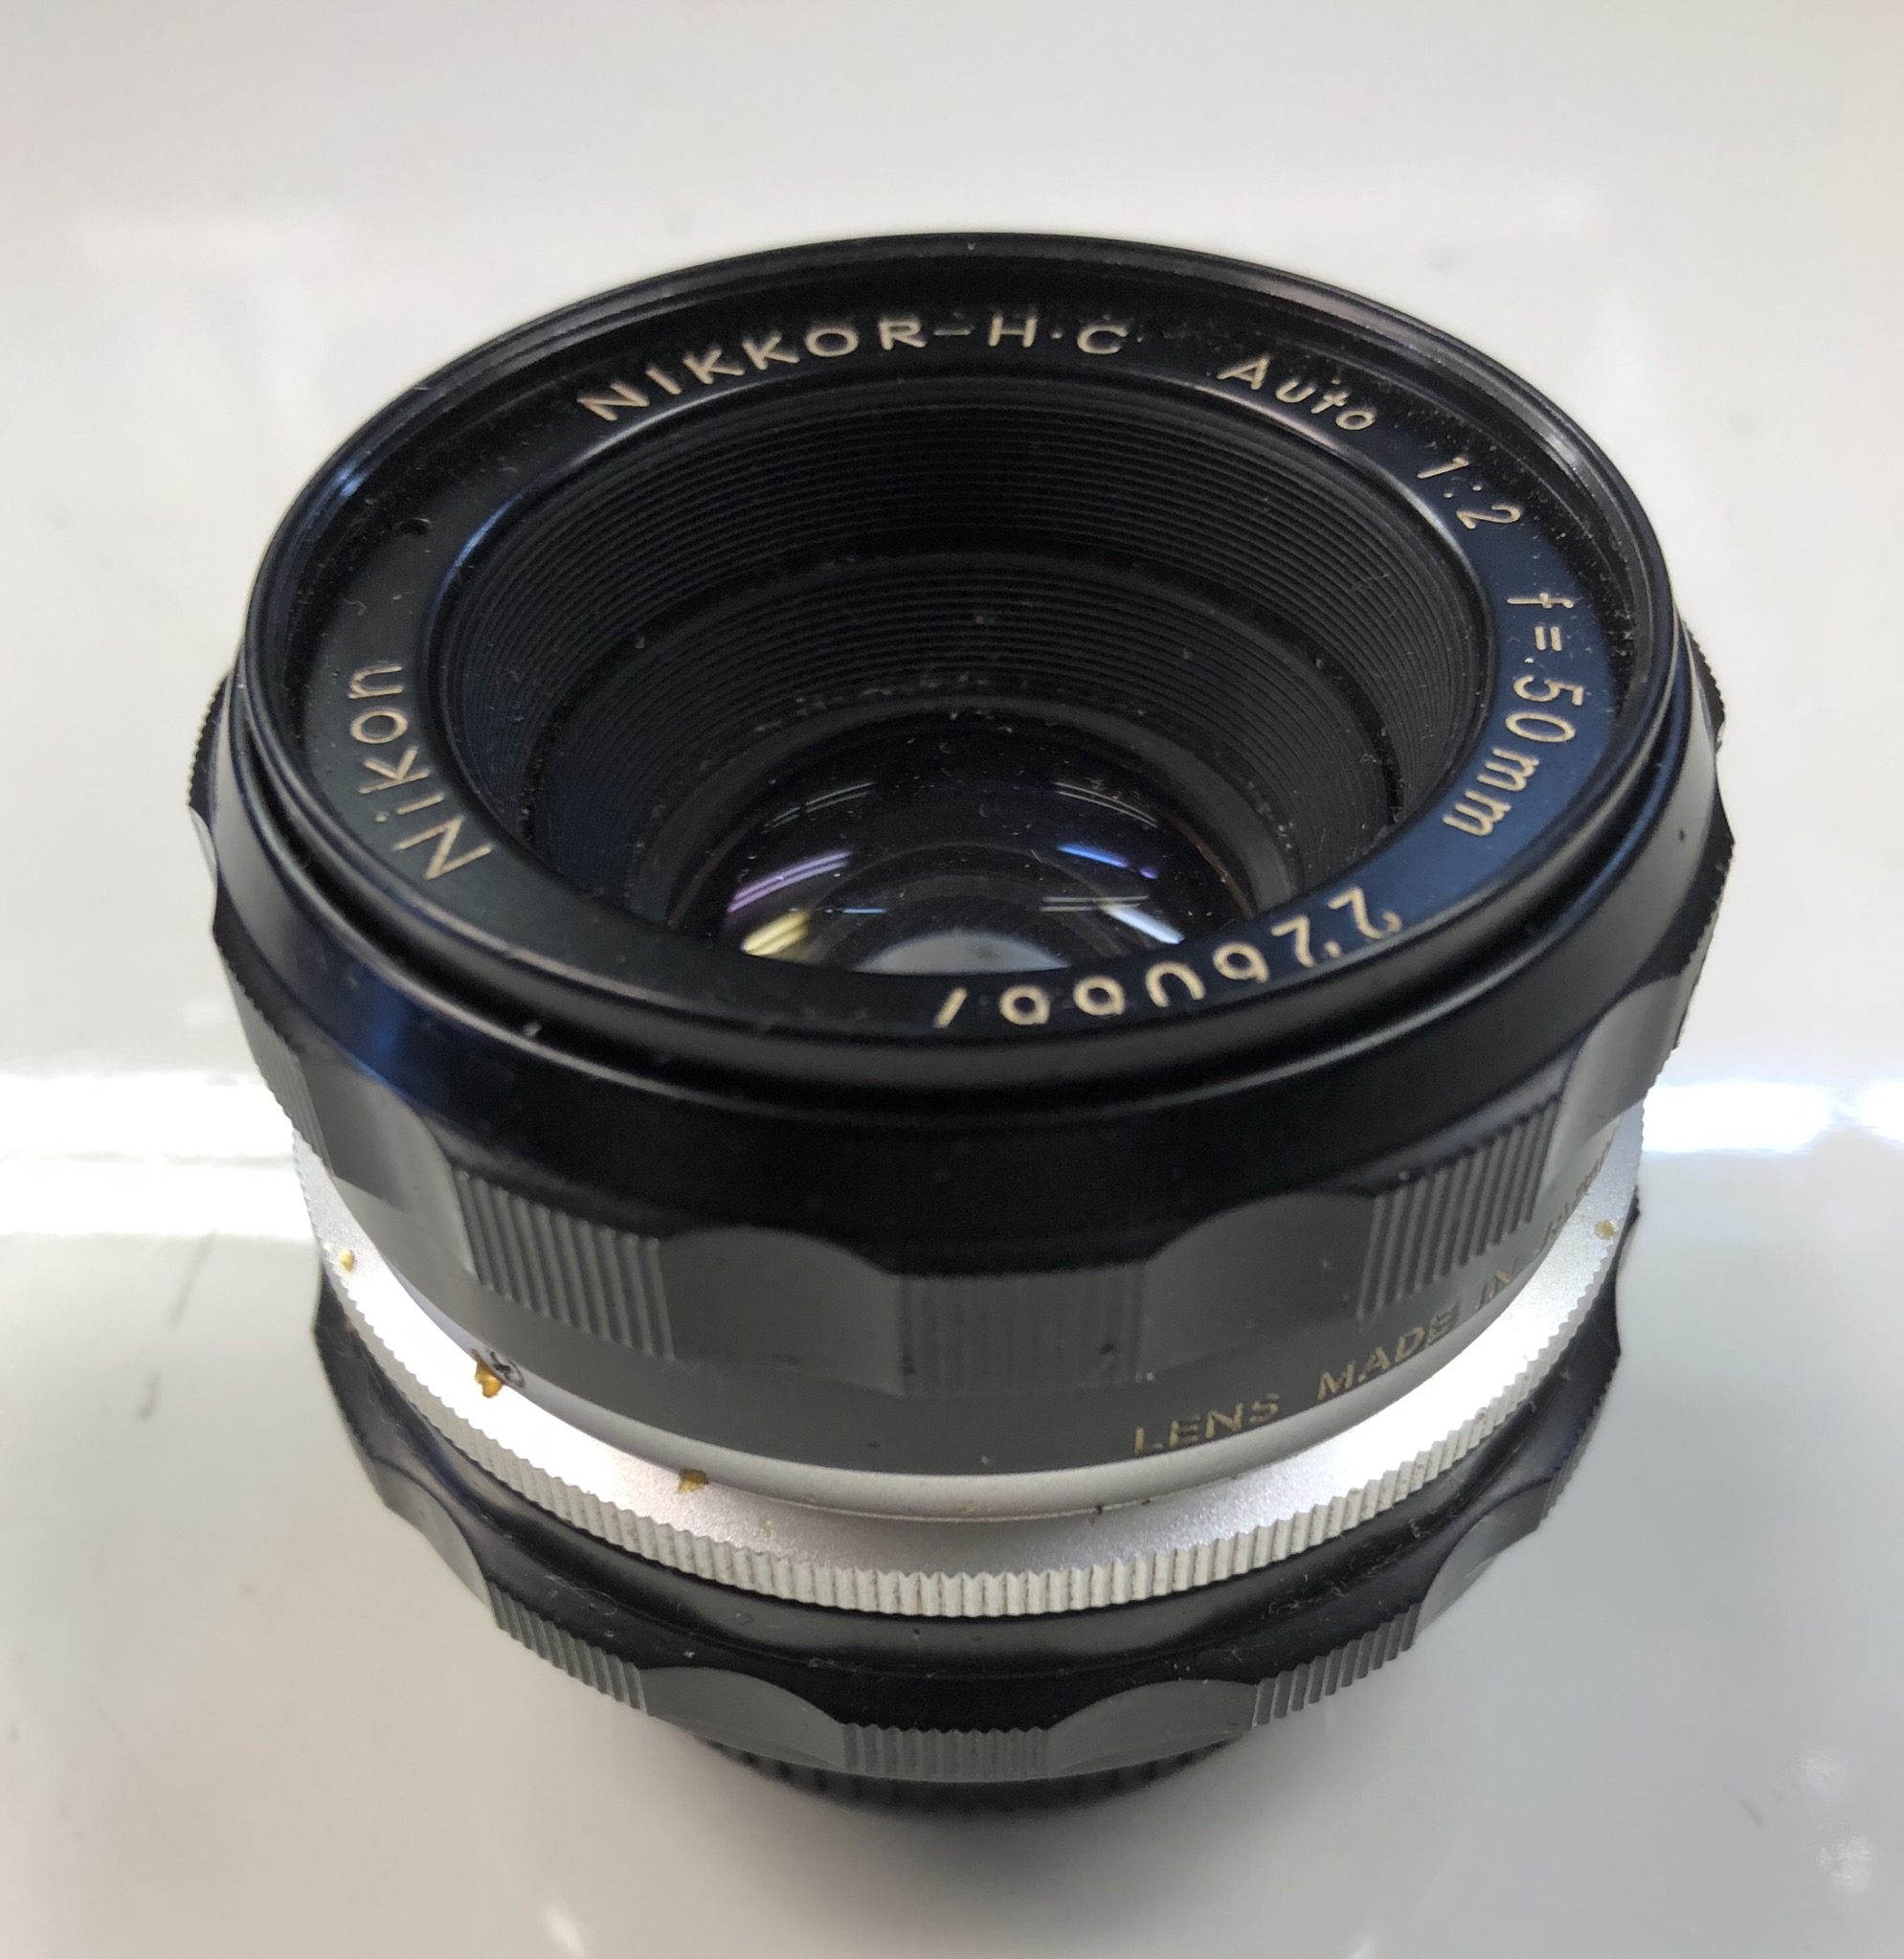 Picture of Nikon Nikkor H-C AI 50mm f2